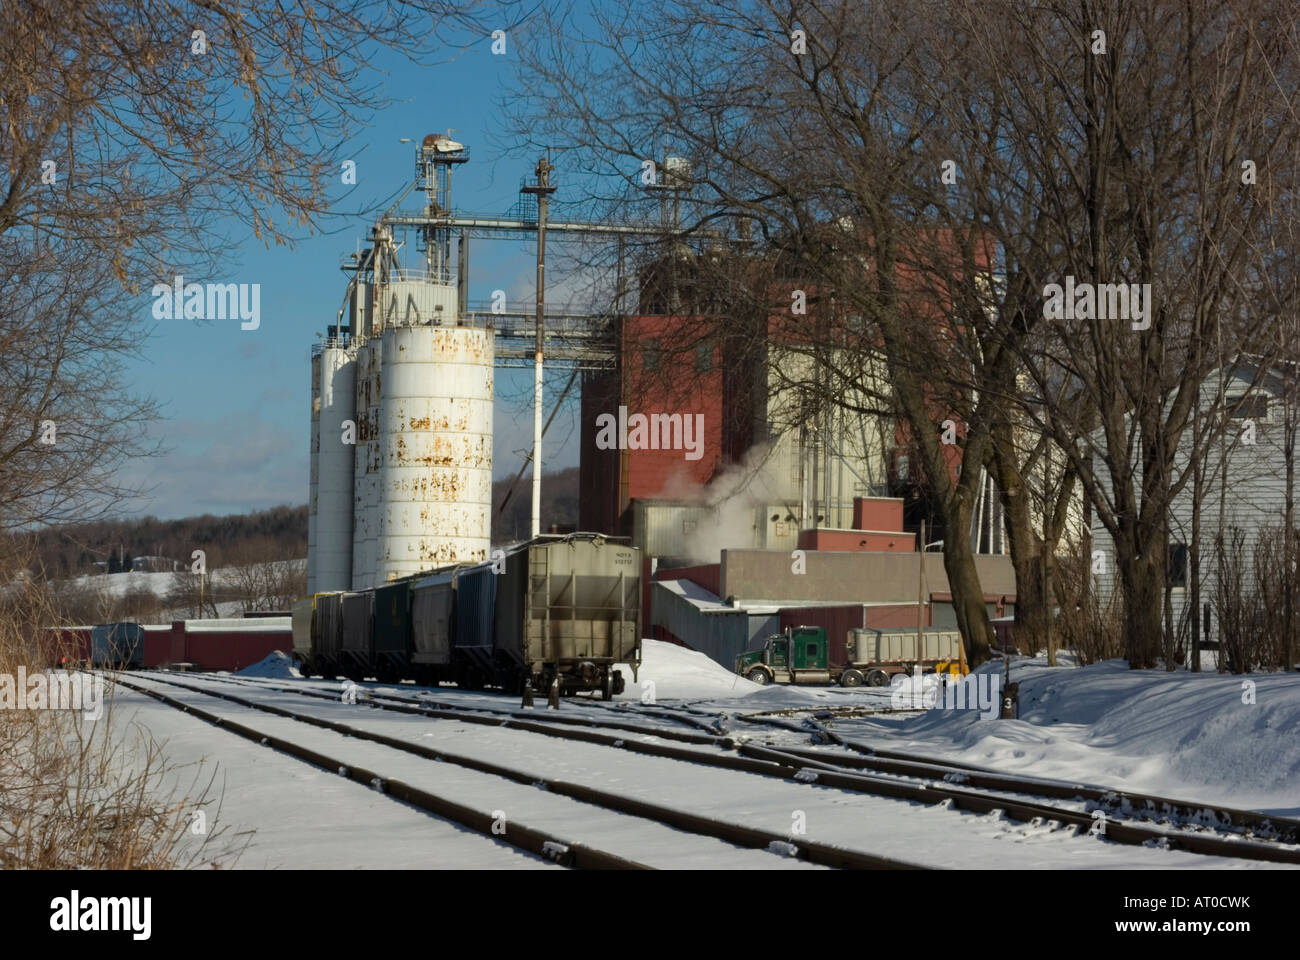 Rail siding at animal feed facility with storage containers freight